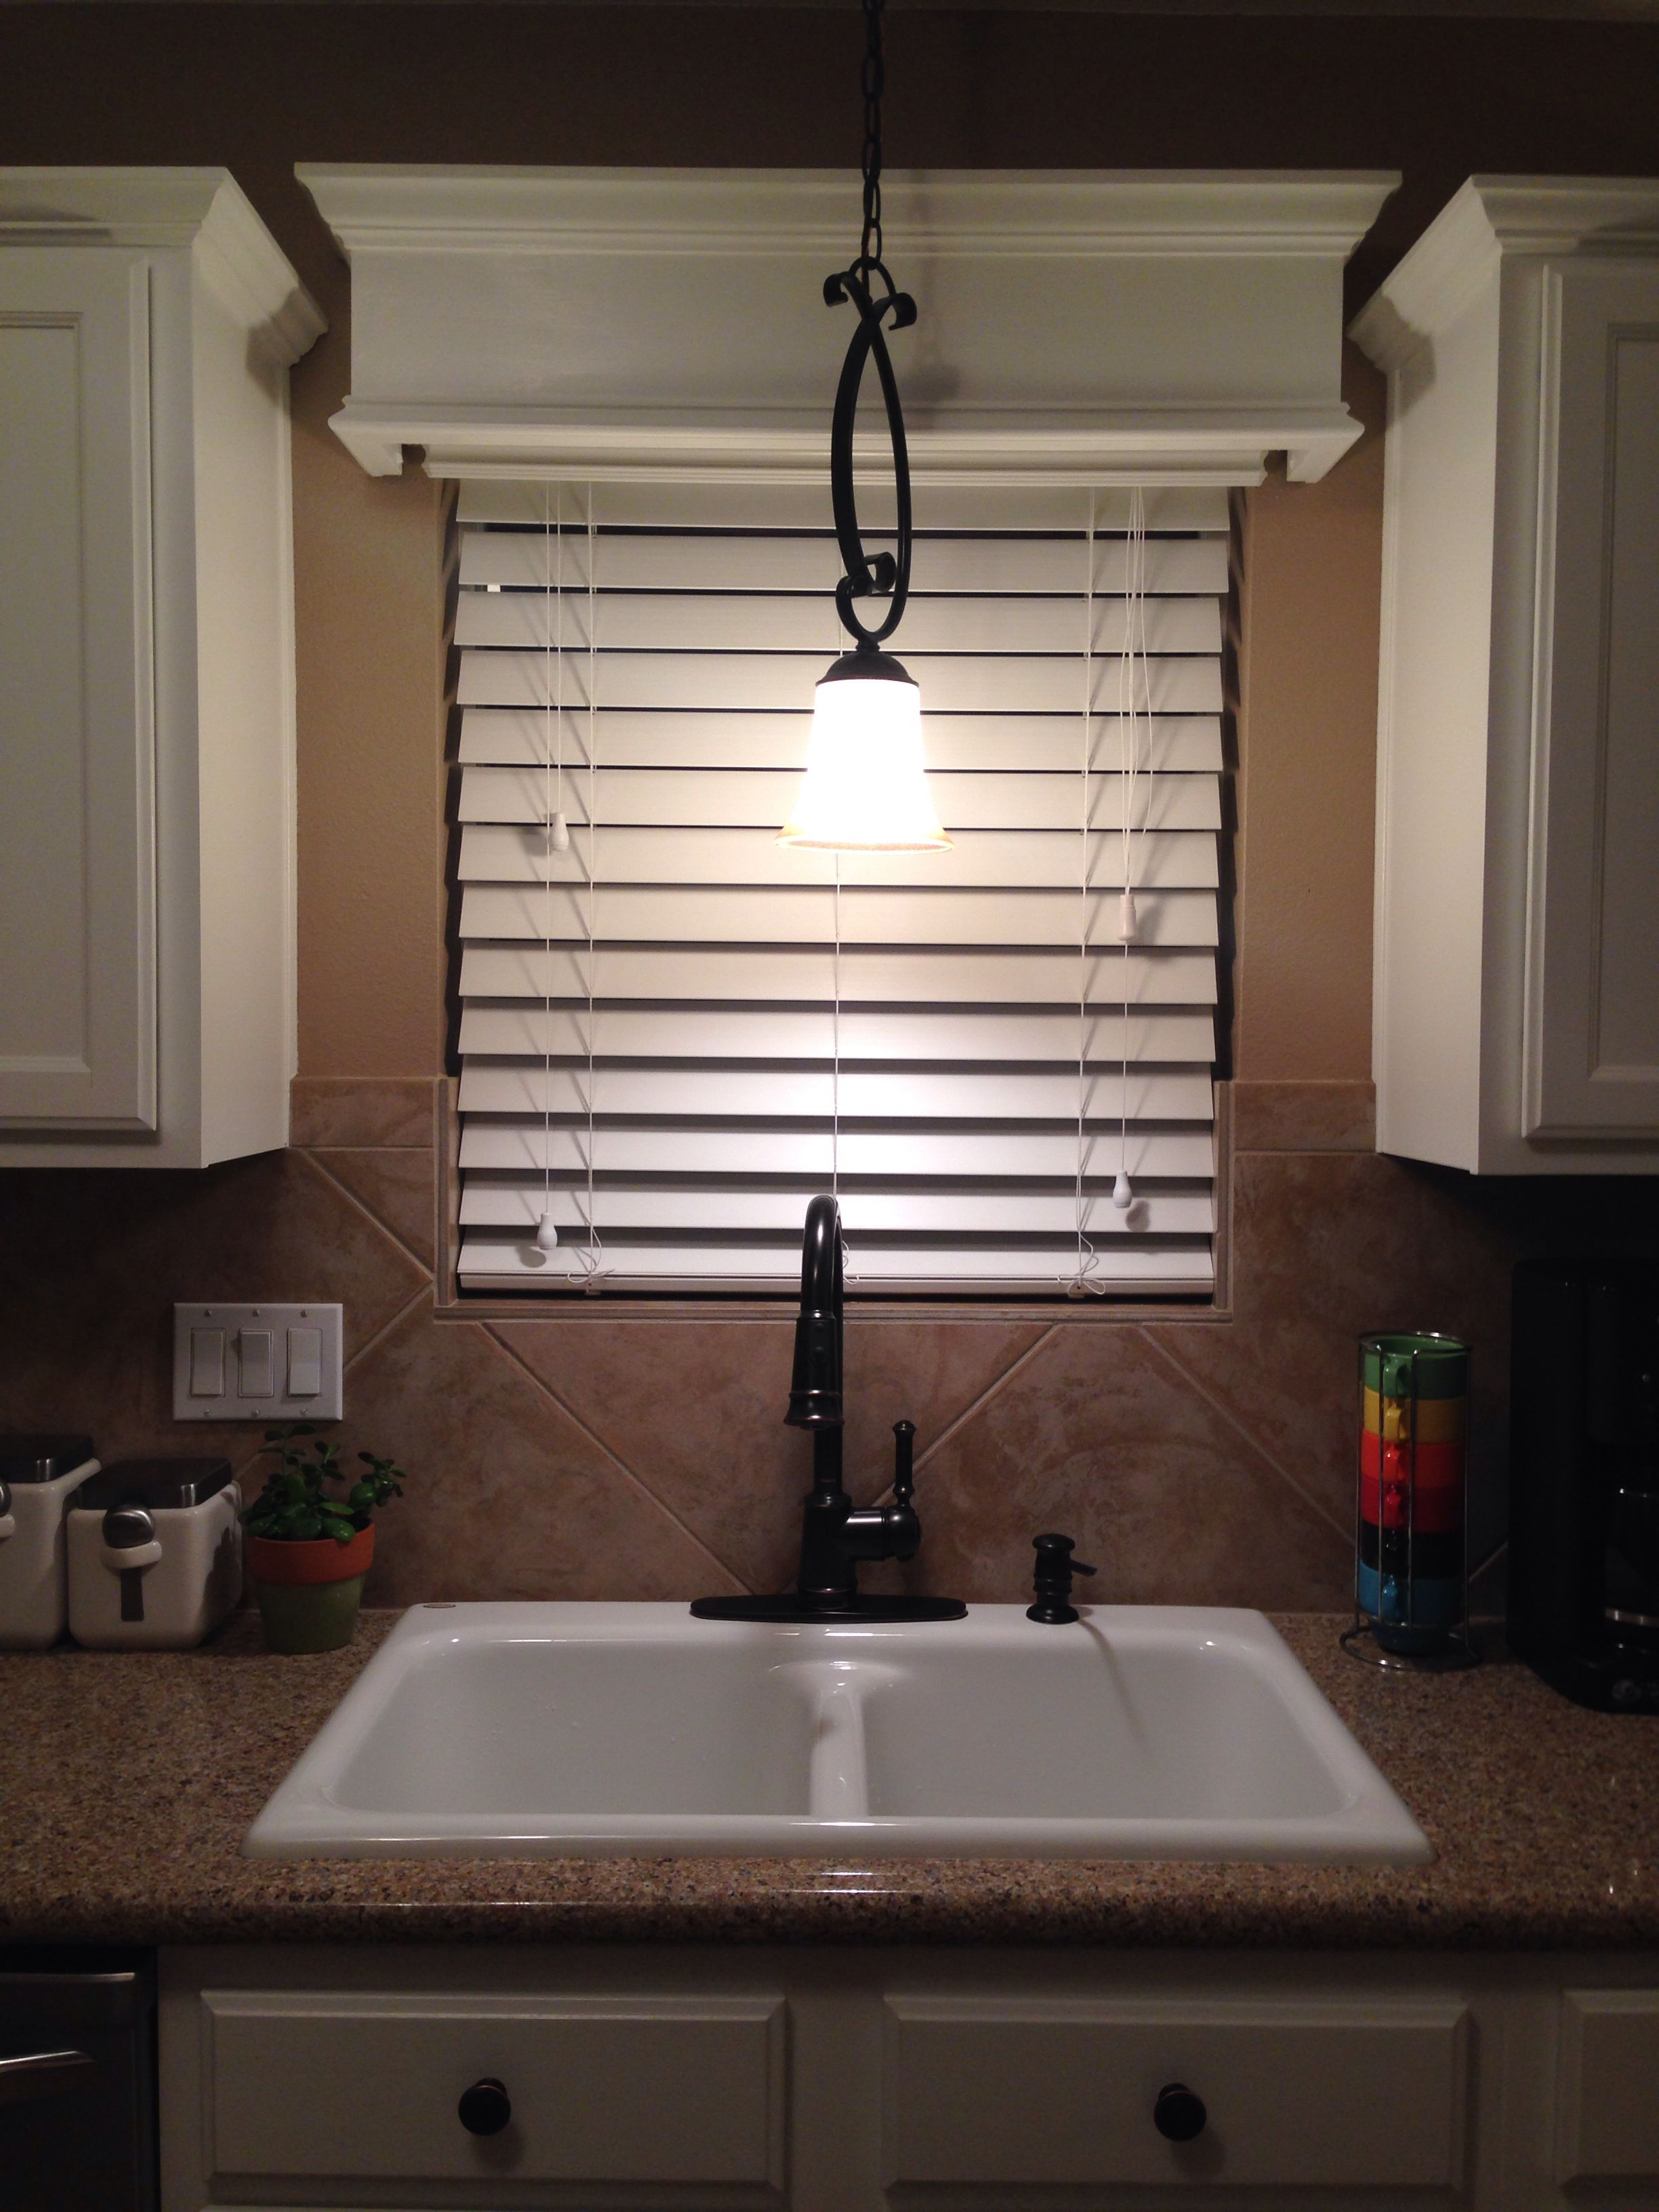 Super Easy Diy Wooden Cornice Board With Crown Molding In Kitchen